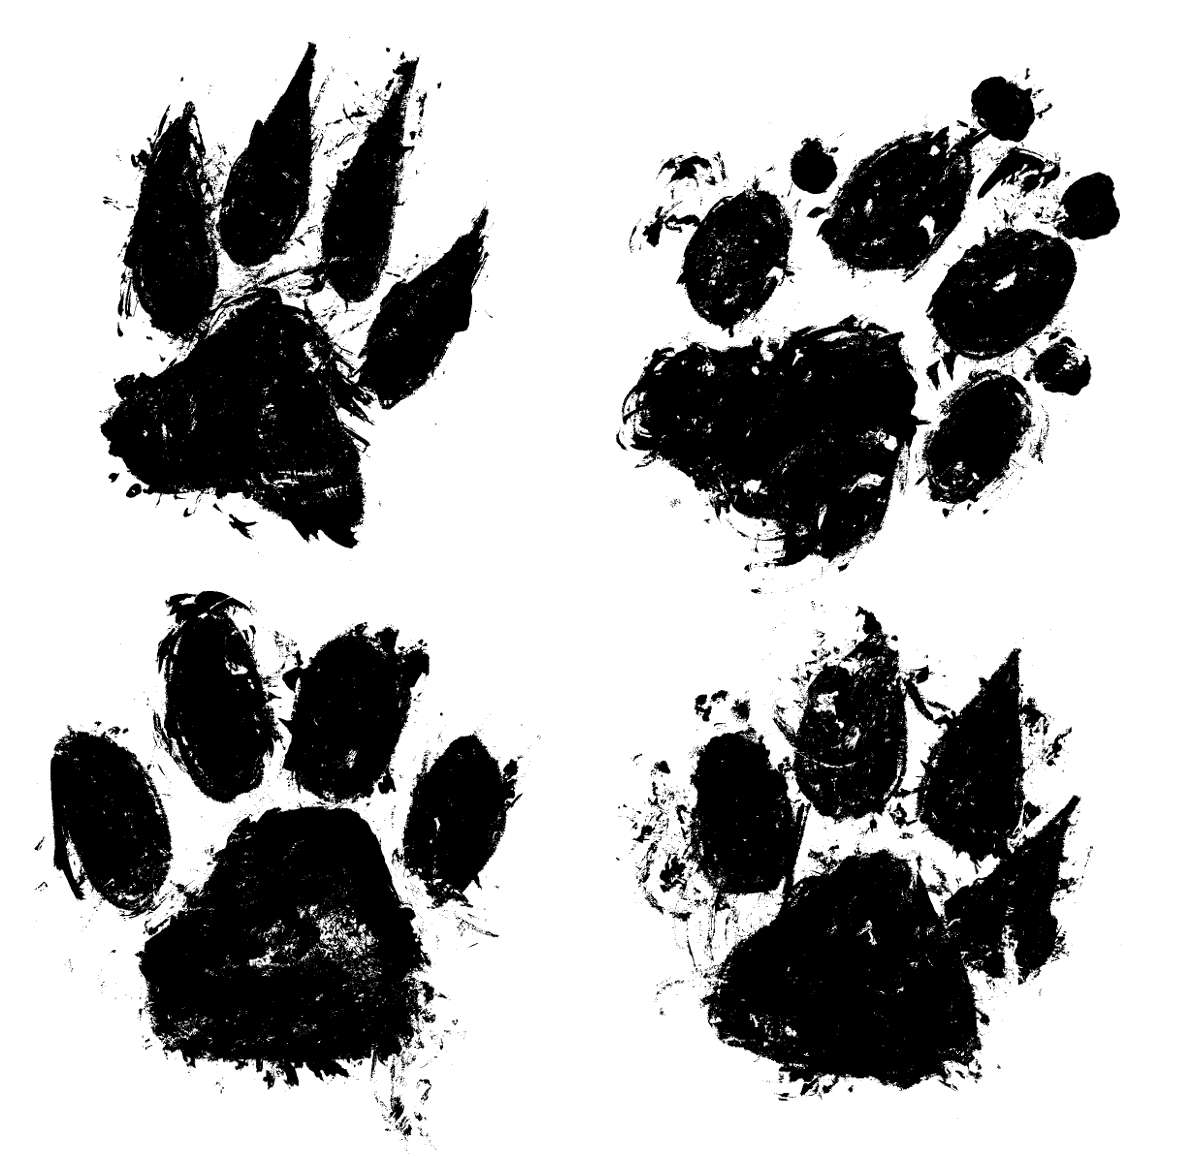 4 Grunge Paw Print Png Transparent Onlygfx Com Paw print color painting by dan sproul. 4 grunge paw print png transparent